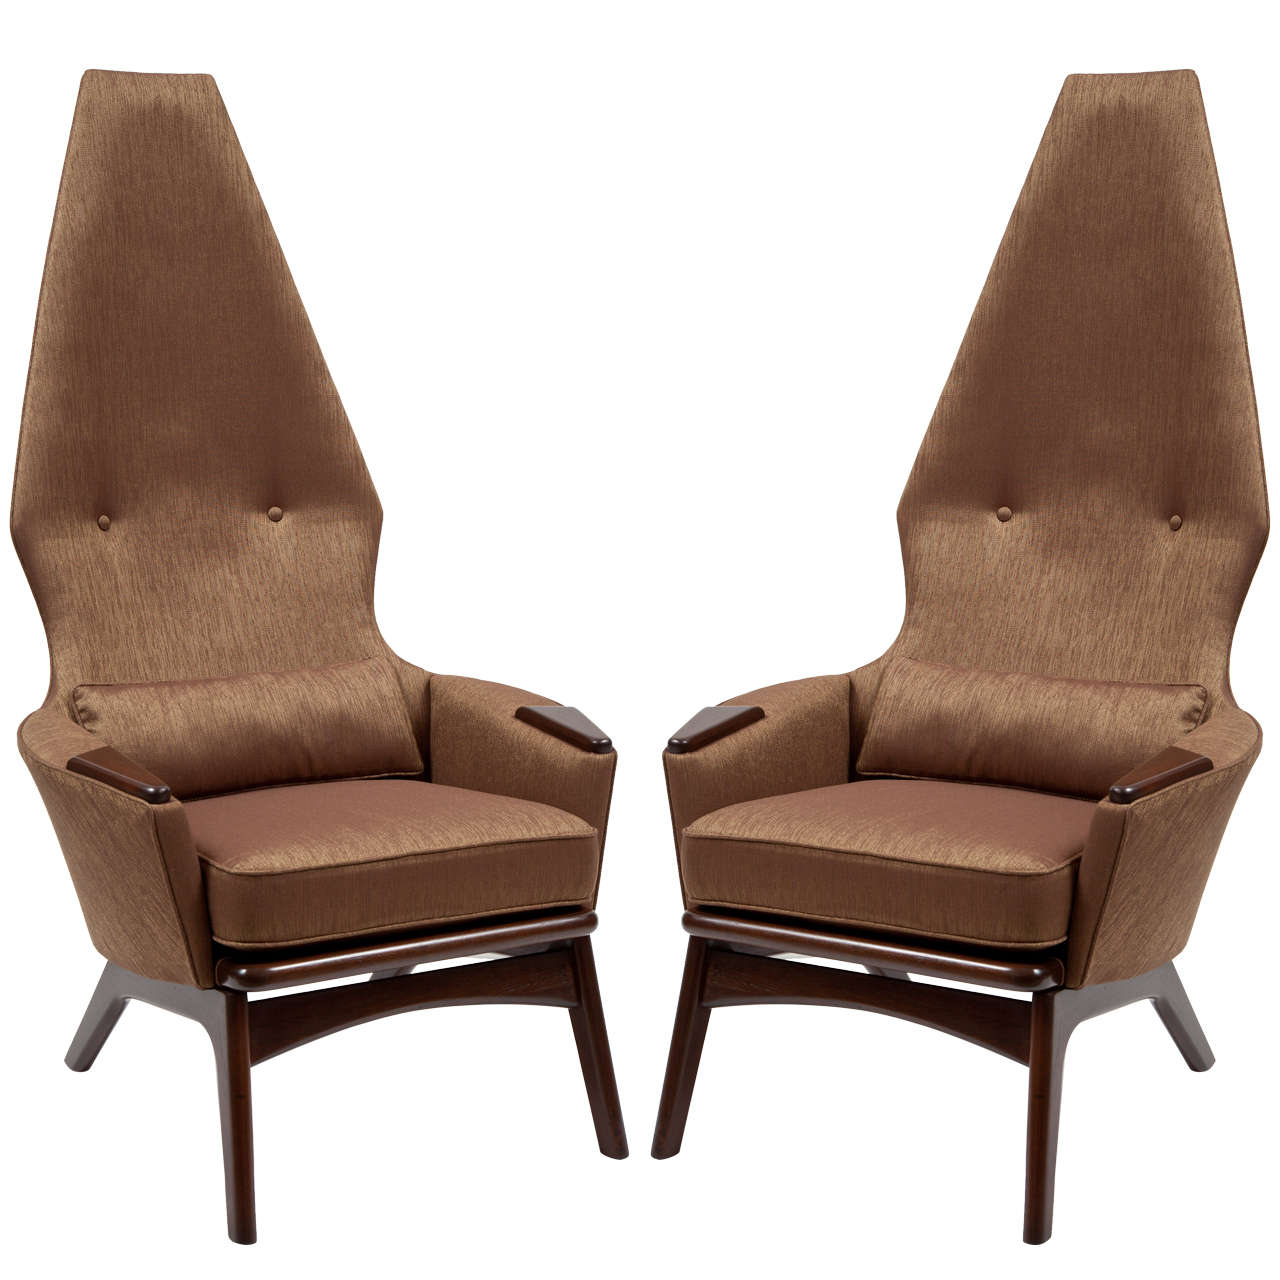 Pair Of Stylized High Back Lounge Chairs By Adrian Pearsall At 1stdibs